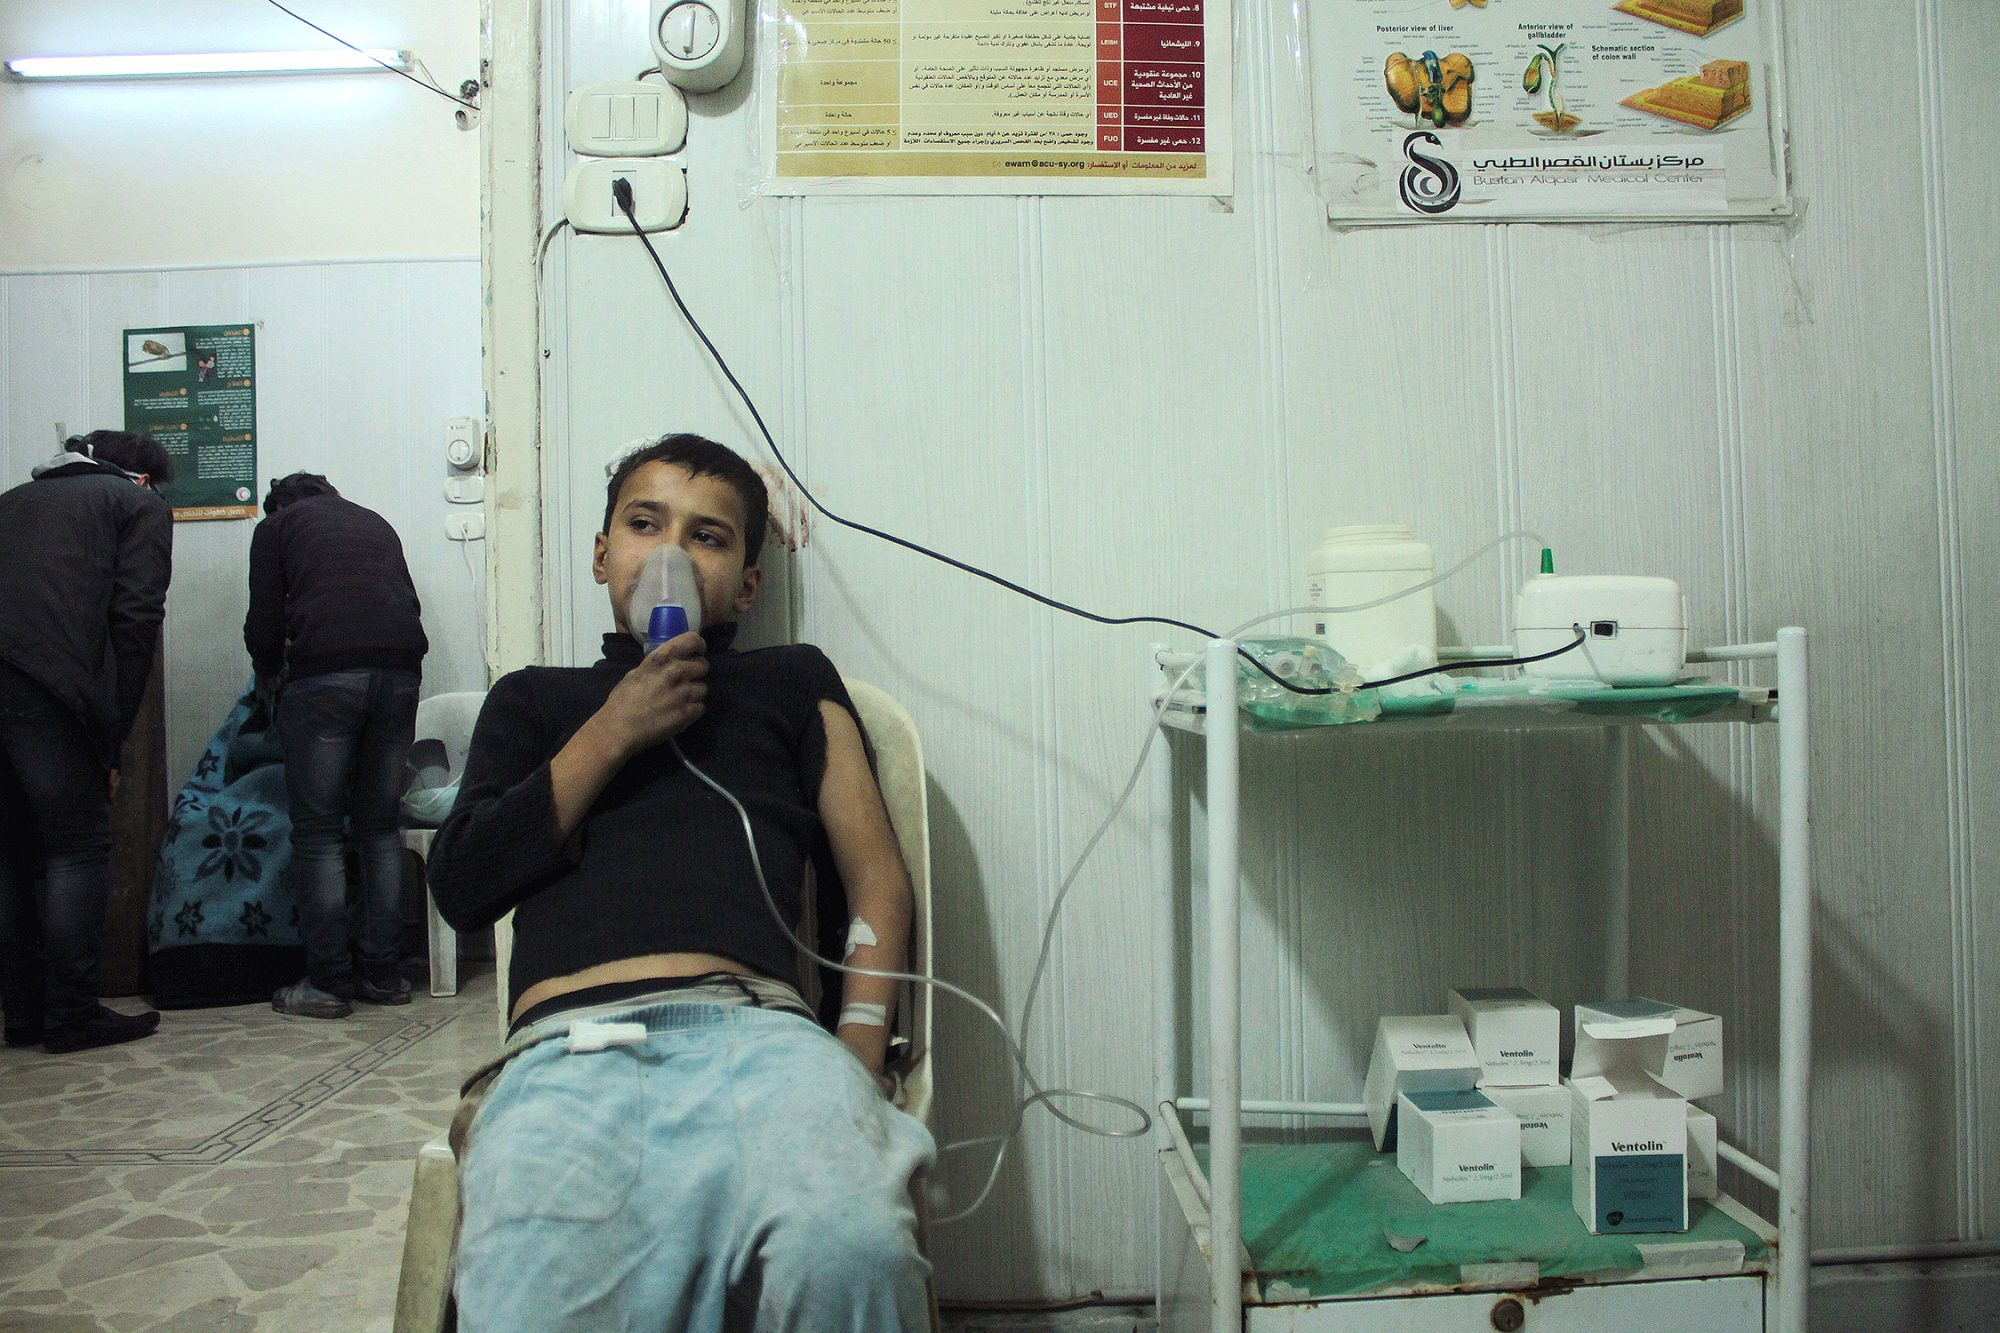 epa05668704 A civilian suffering of respiratory distress symptoms receives treatment at a field hospital in al-Kallaseh neighborhood, Aleppo, Syria, early 10 December 2016. According to local sources, most of the patients allegedly showed signs of Chlorine gas use in strikes by suspected Syrian Government forces and its allies on 10 December afternoon. Local sources added that some 40 people suffered of such symptoms after the strikes. EPA/GHIRH SY EPA SYRIA ALEPPO CONFLICT